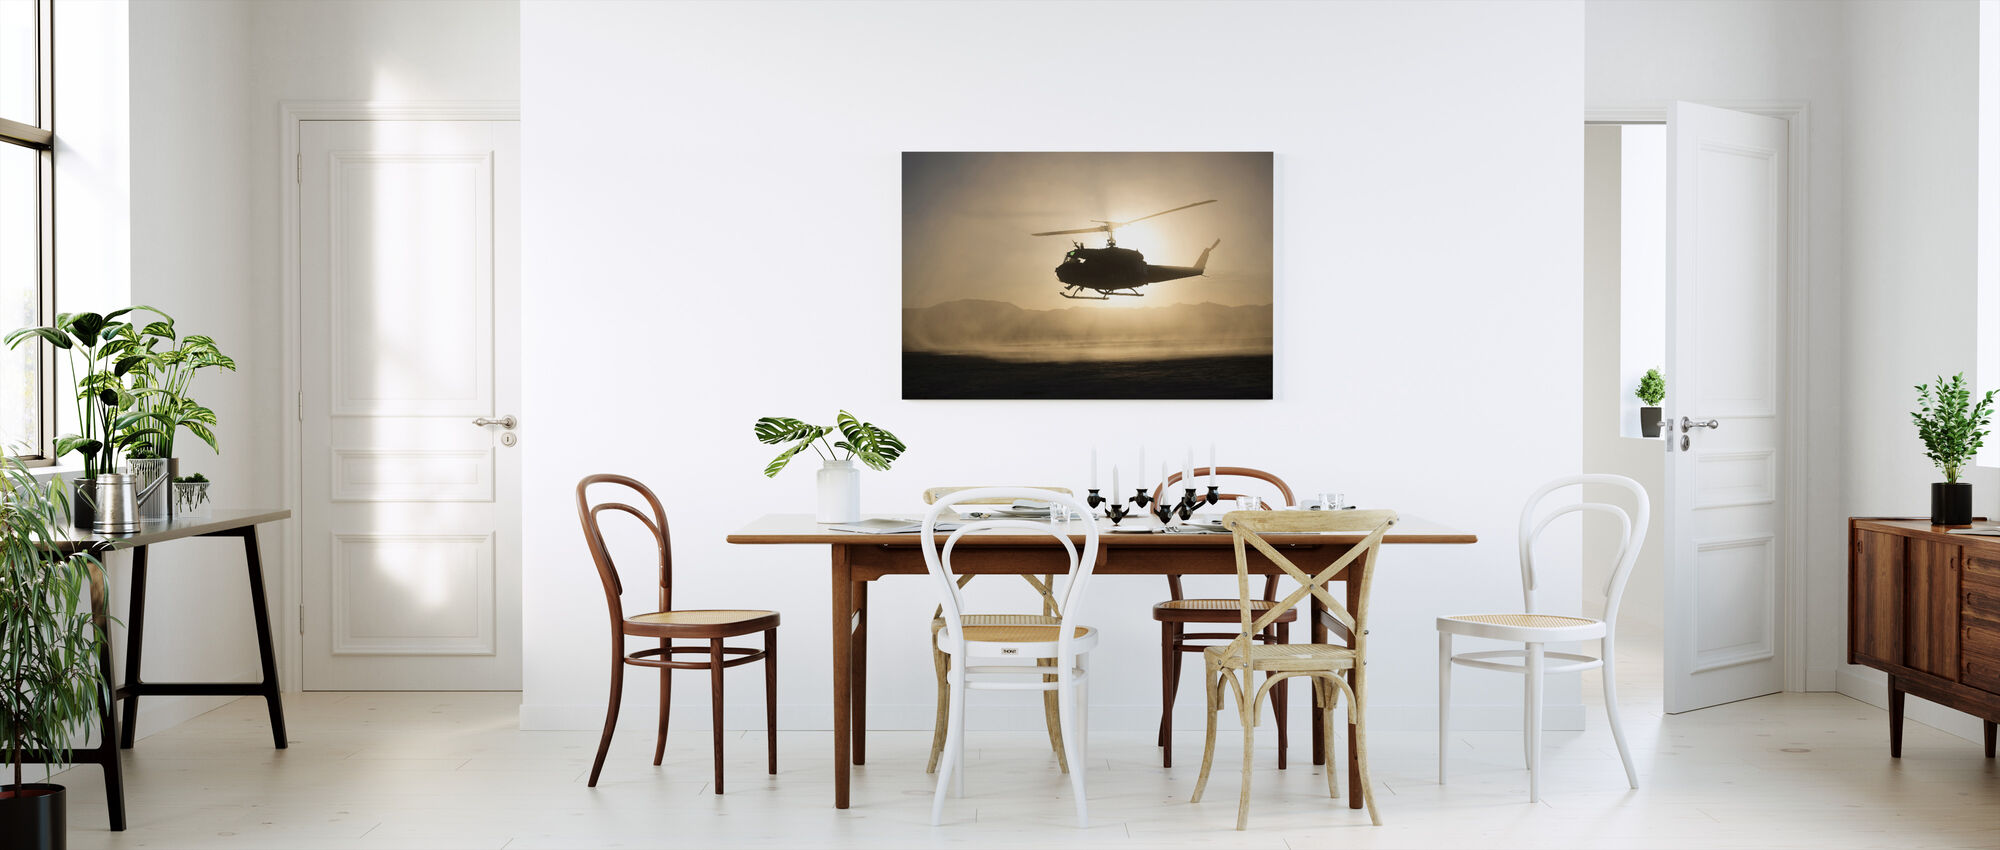 Helicopter Sunset - Canvas print - Kitchen